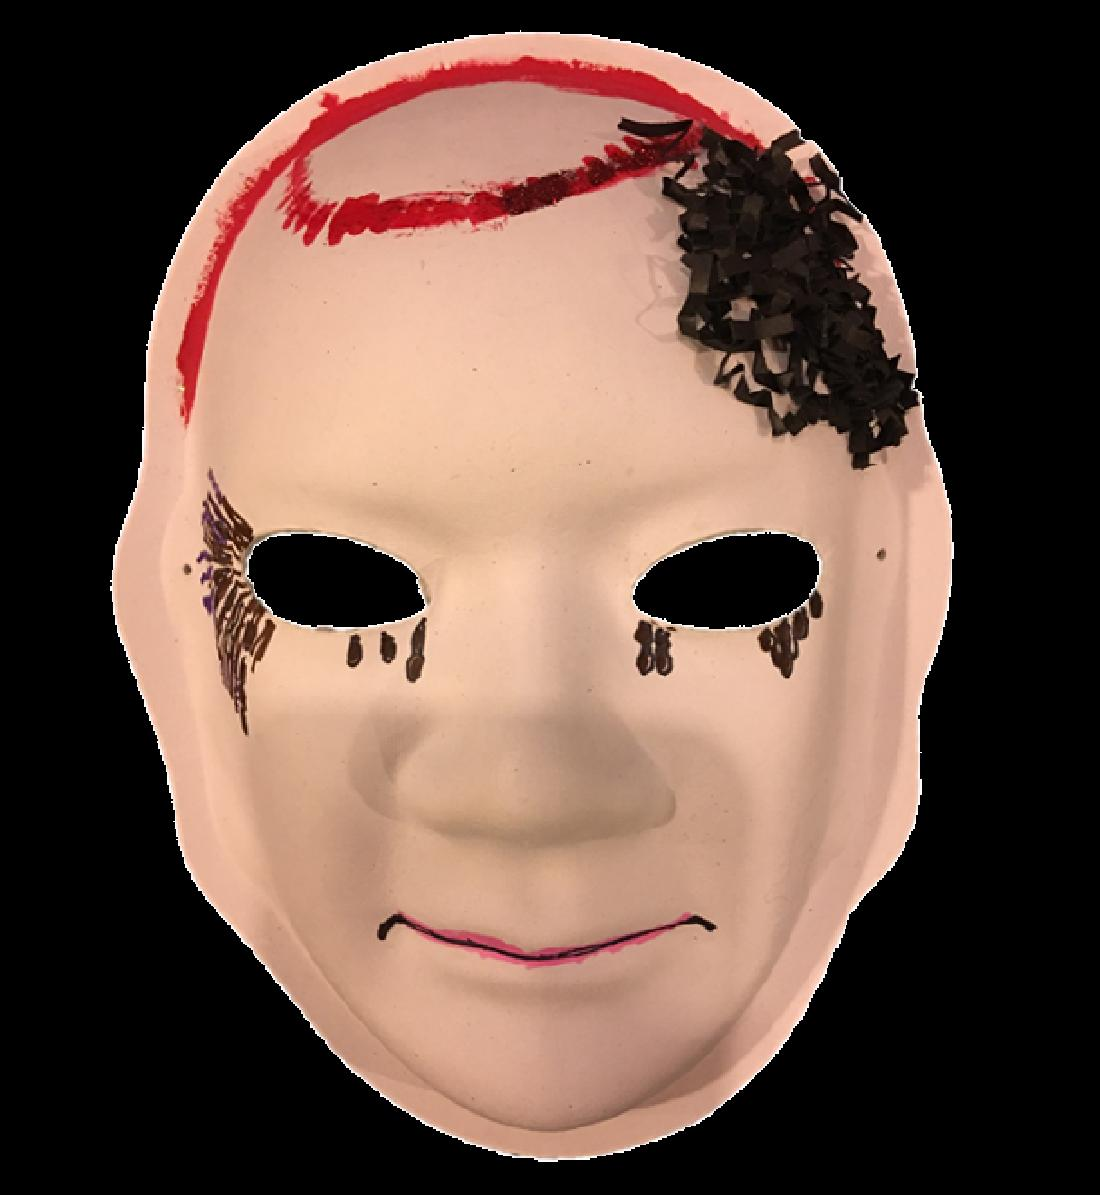 #MOTD Priscilla, Biddeford Stroke I lost my peripheral vision. My head is all fuzzy often times. I tend to be weepy. I have a smile but I hide it in the black because it is not a true smile. I hide my smile because I feel overwhelmed and not always able to give it back